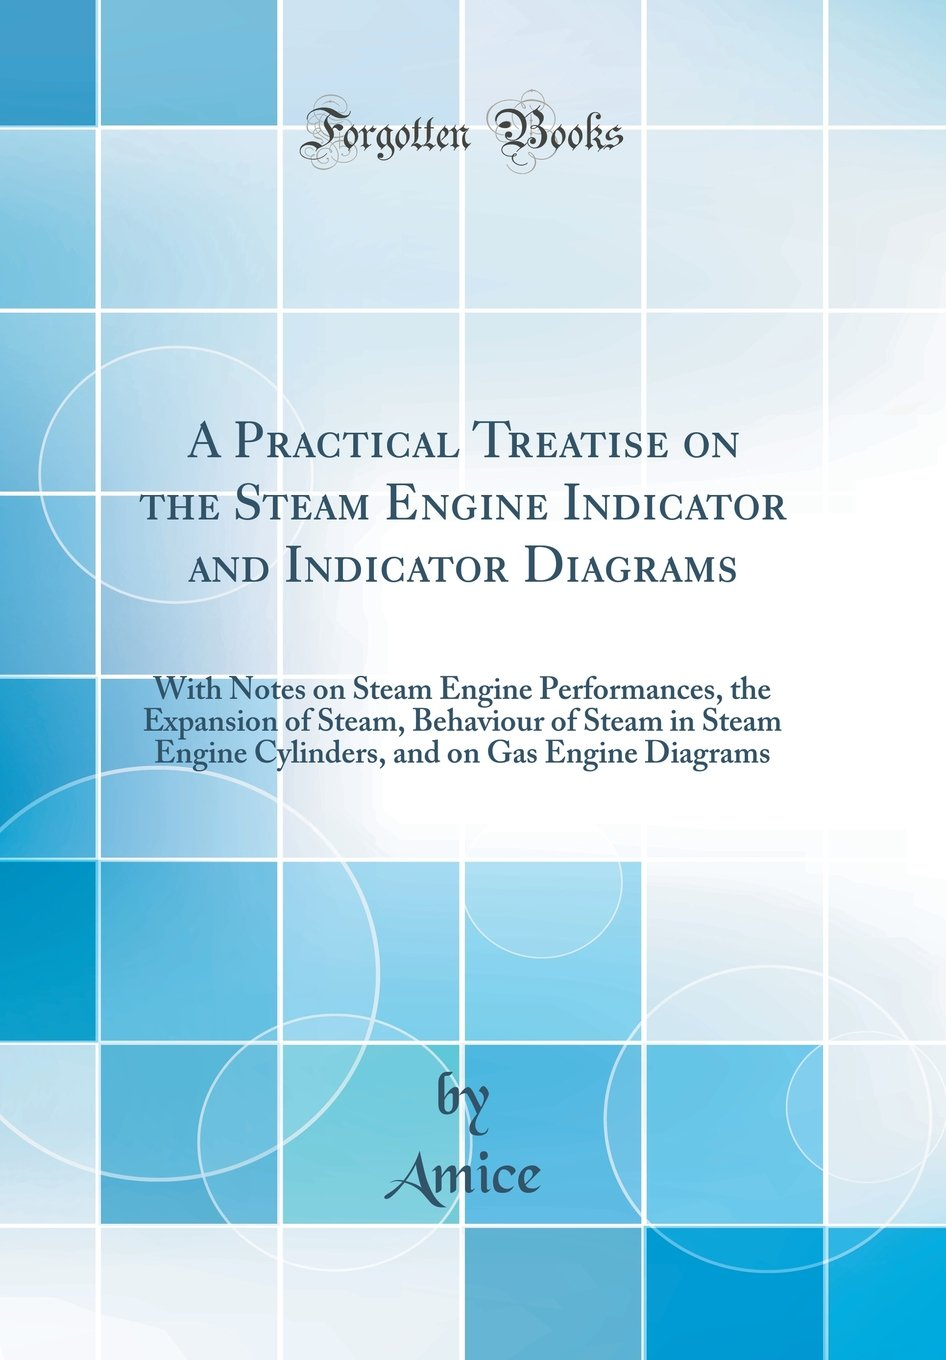 A Practical Treatise on the Steam Engine Indicator and Indicator Diagrams:  With Notes on Steam Engine Performances, the Expansion of Steam, ...